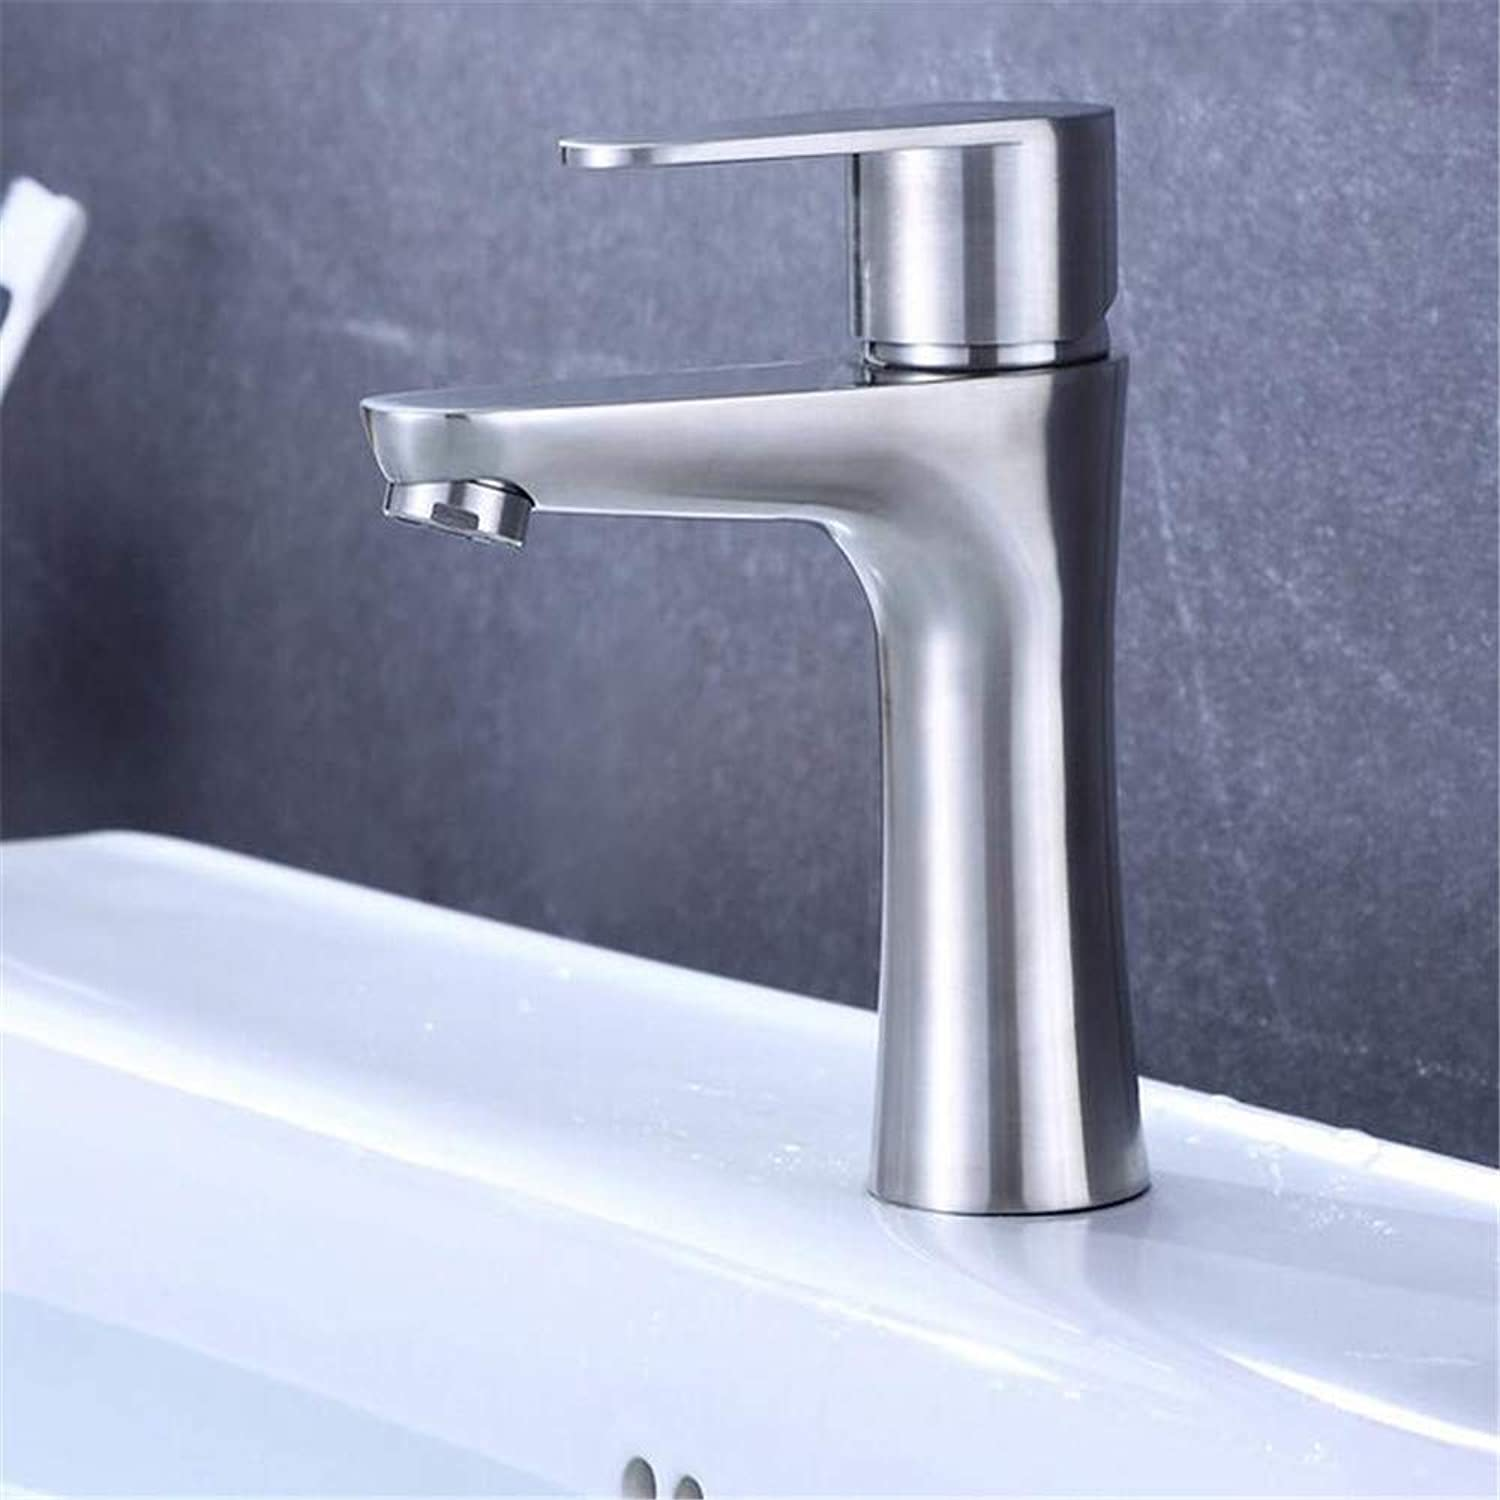 Basin Mixer Tap Stainless Steel Faucet Sanitary Ware Wholesale Hot and Cold Washbasin Faucet Bathroom Basin Basin Faucet